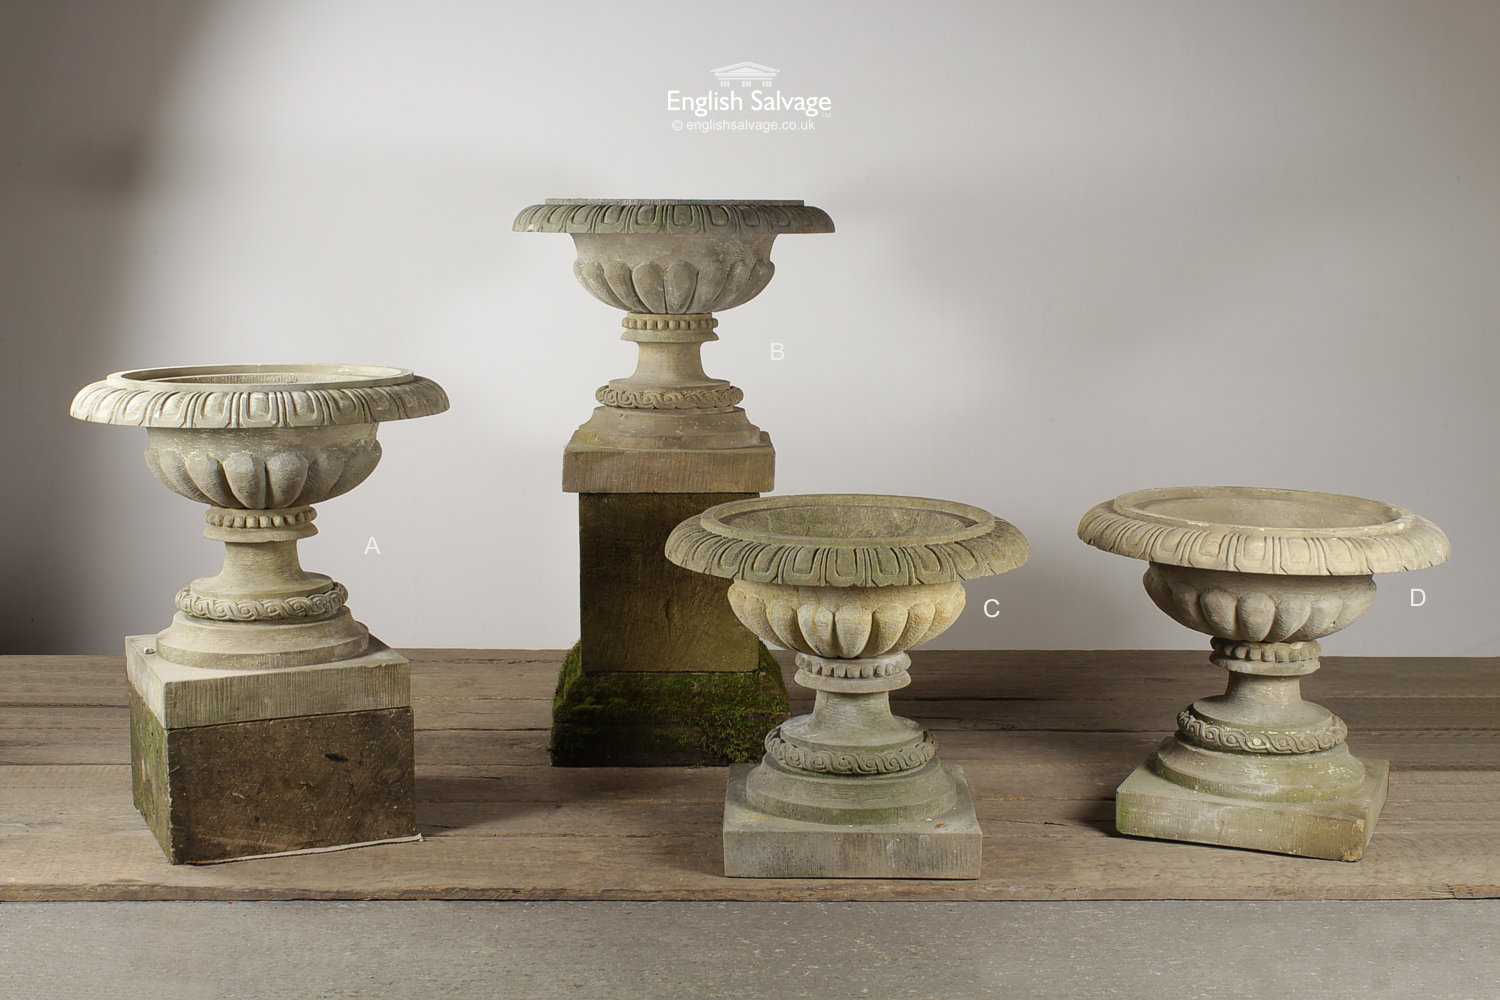 Salvaged Decorative Carved Stone Urns